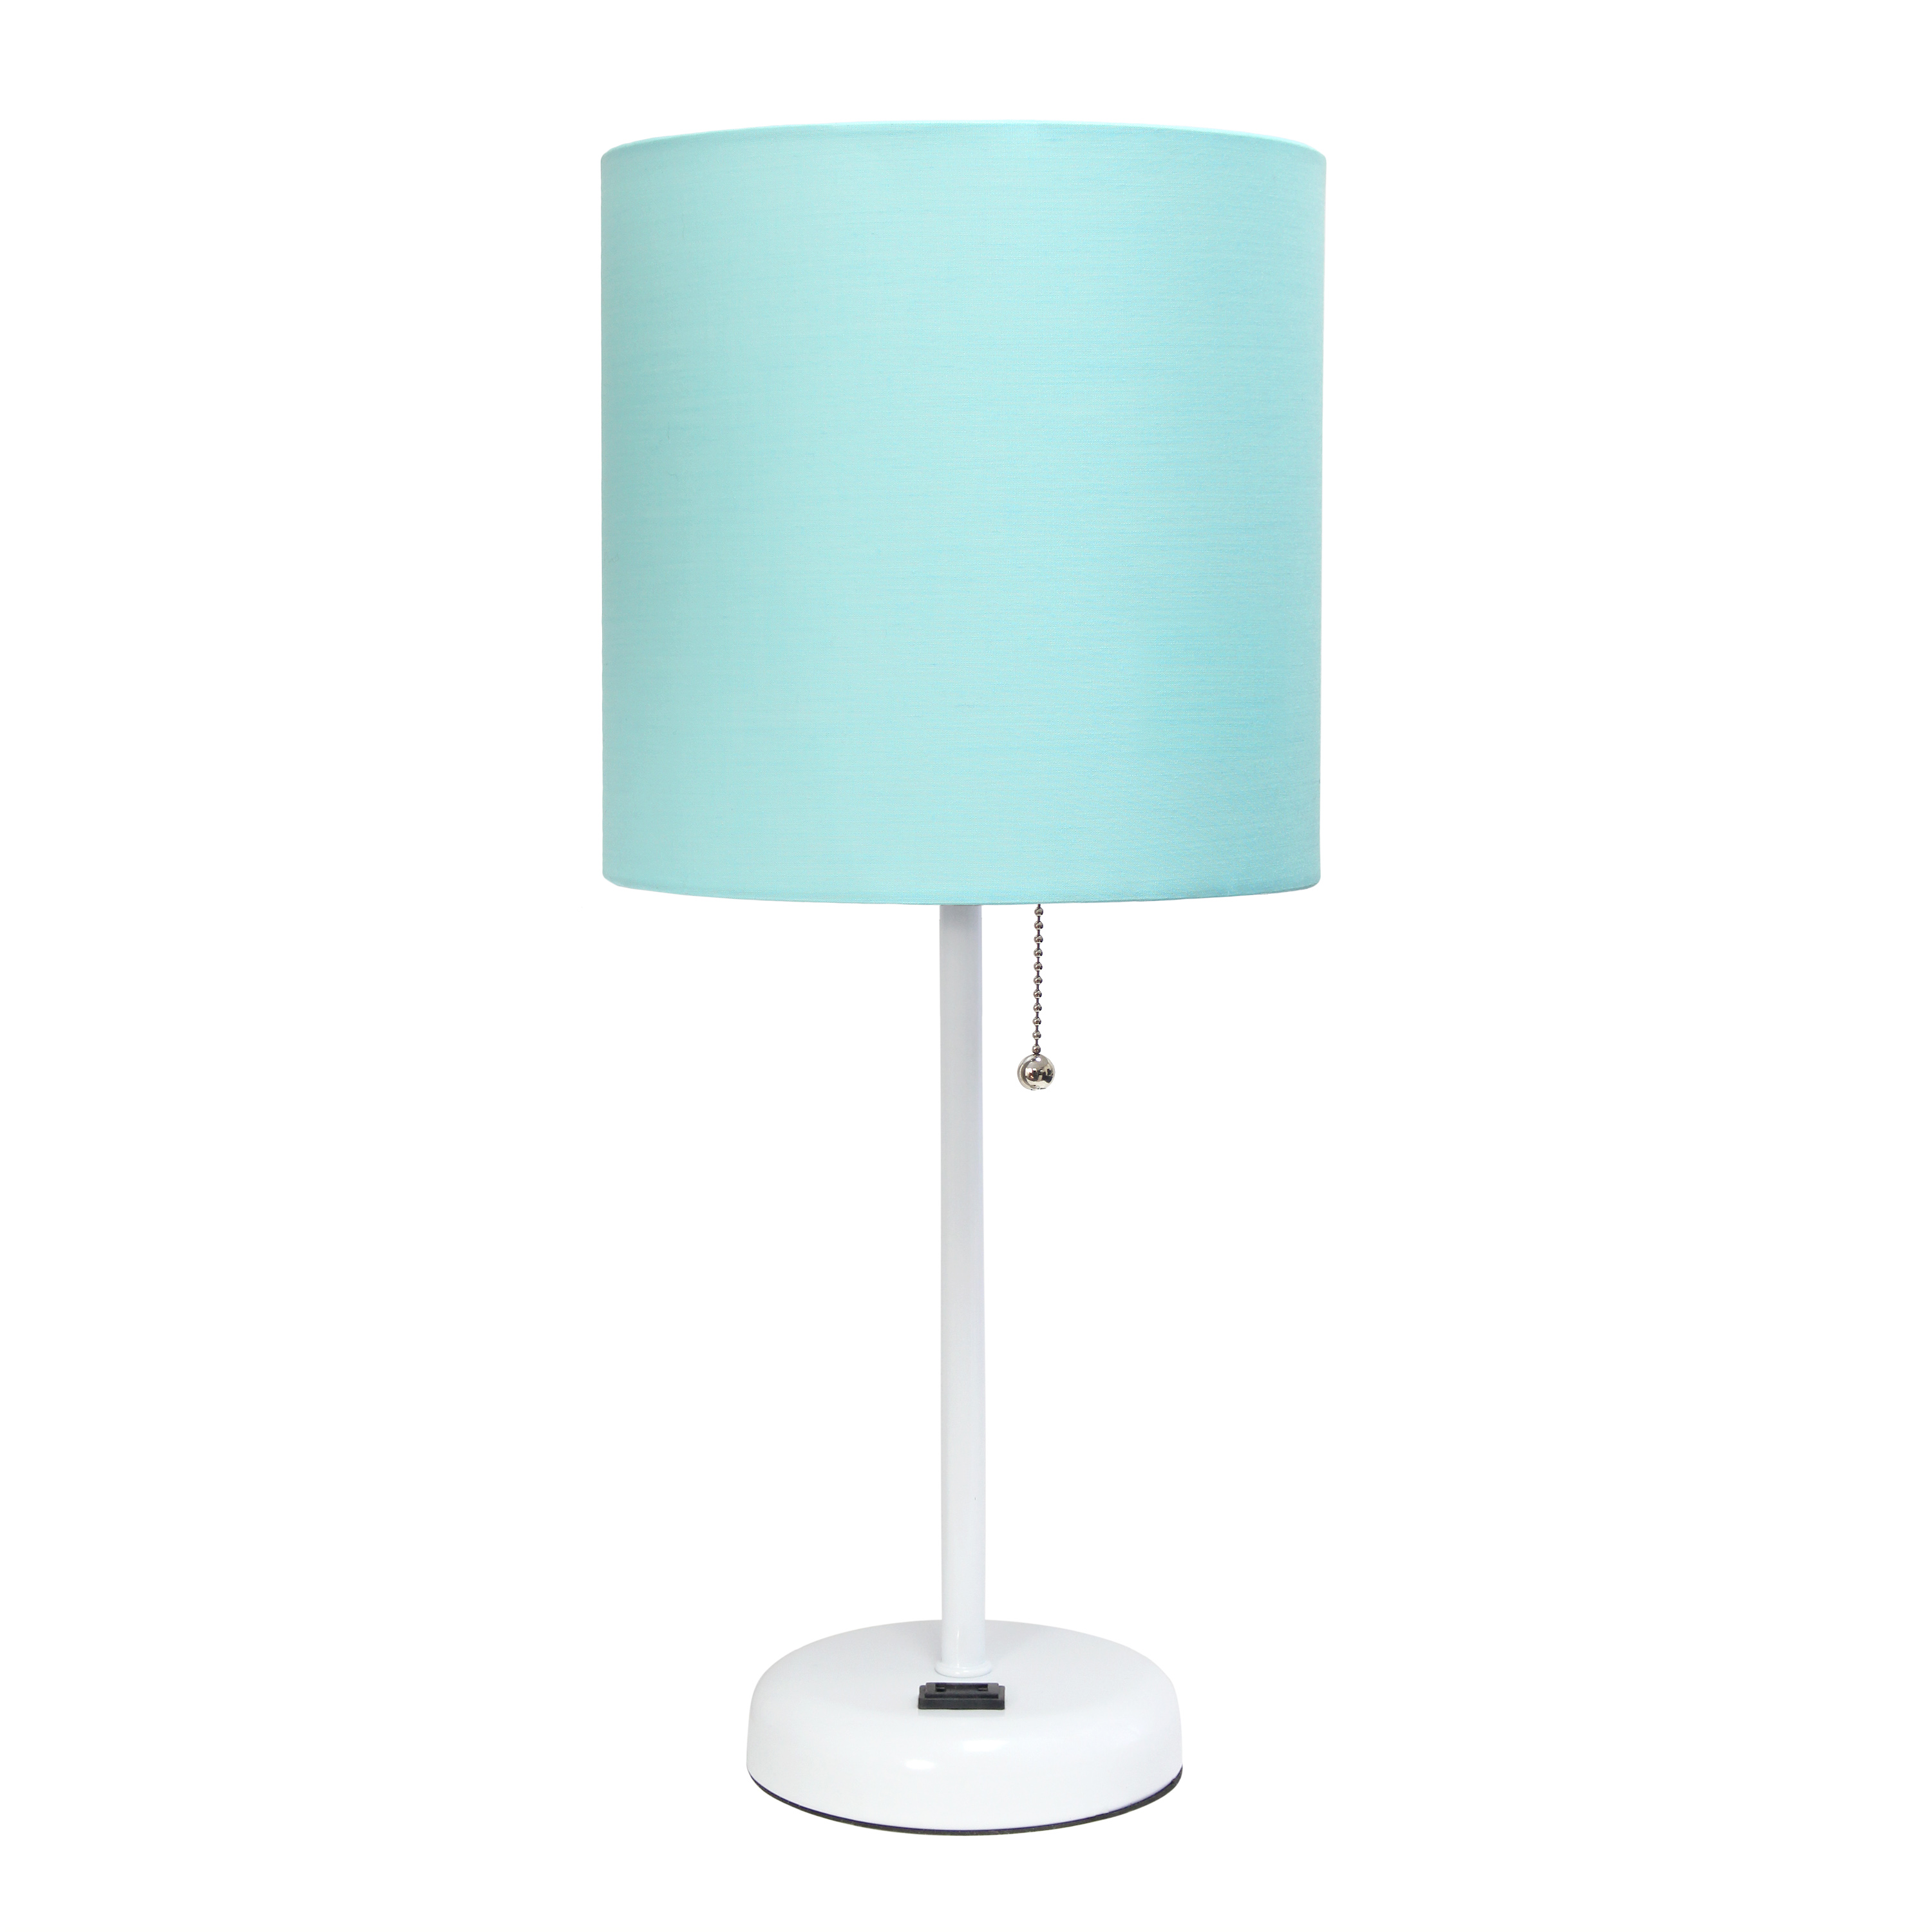 LimeLights White Stick Lamp with Charging Outlet and Fabric Shade, Aqua